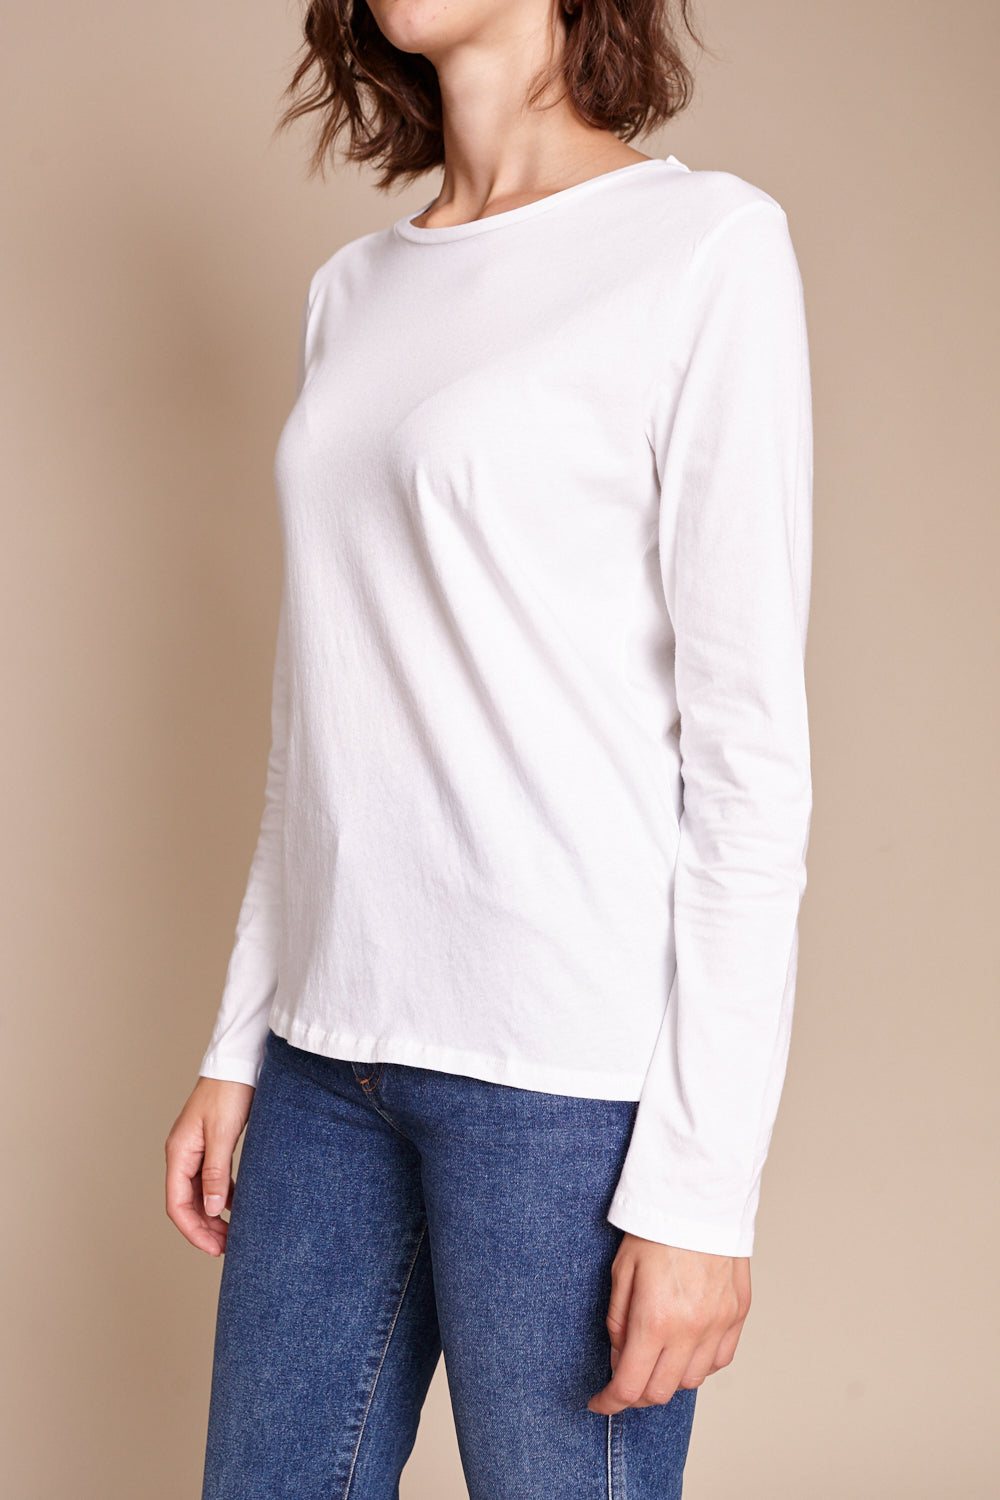 Majestic Silk-Touch L/S Crew in Blanc - Vert & Vogue